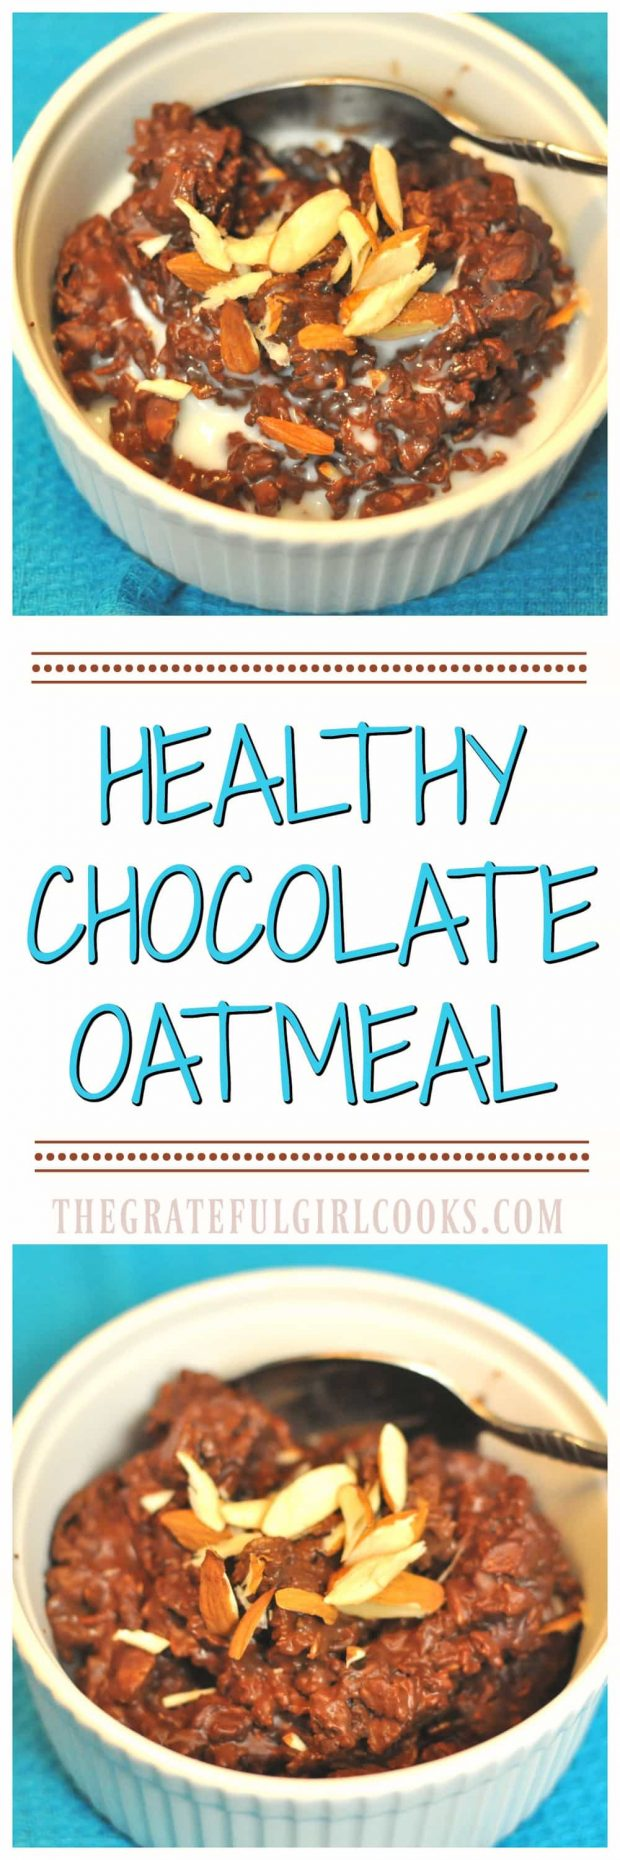 """Healthy Chocolate Oatmeal / The Grateful Girl Cooks! Microwaveable, delicious and healthy, this chocolate oatmeal is a delightful """"morning bowl of goodness""""."""